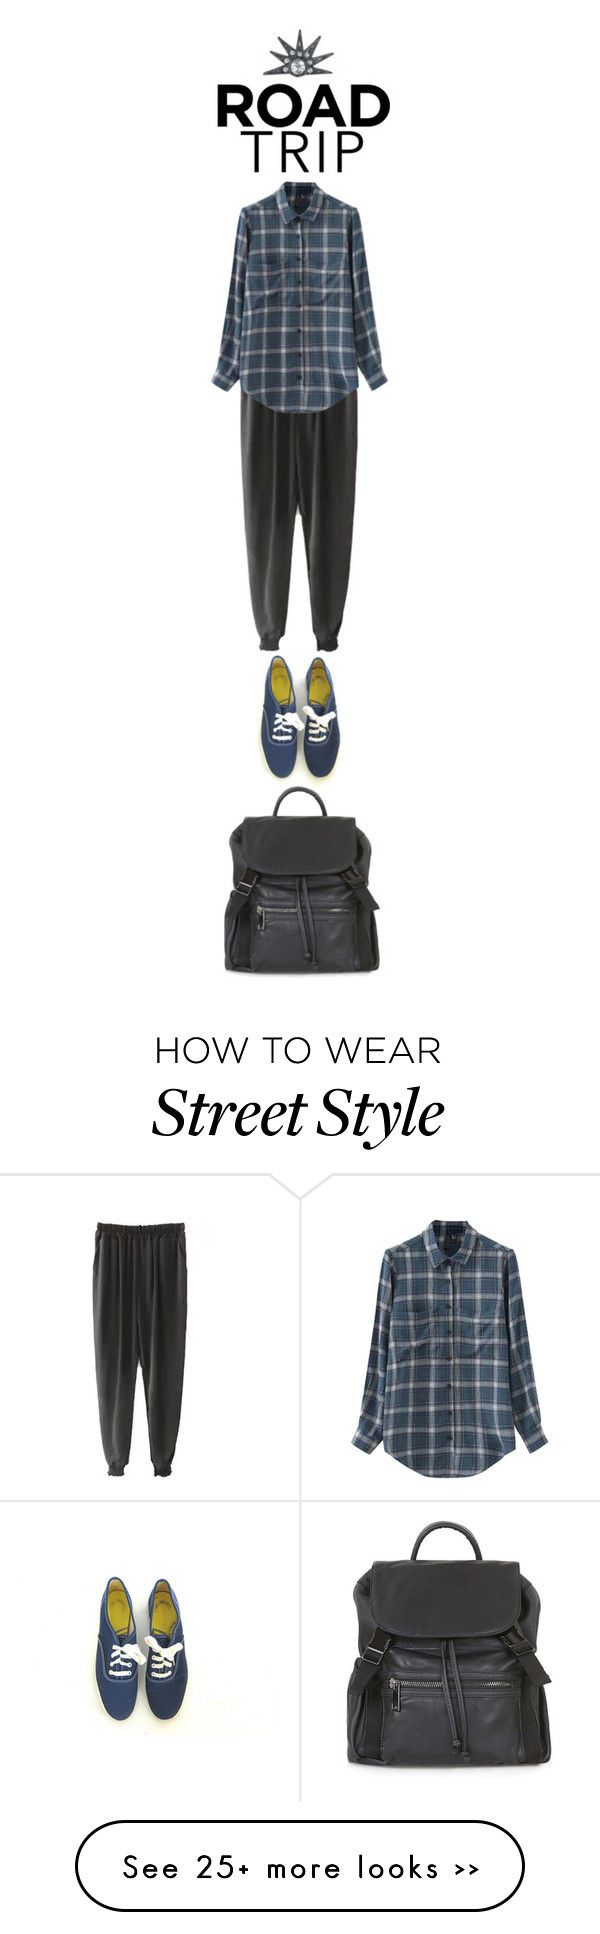 """Road trip style"" by perpetto on Polyvore"